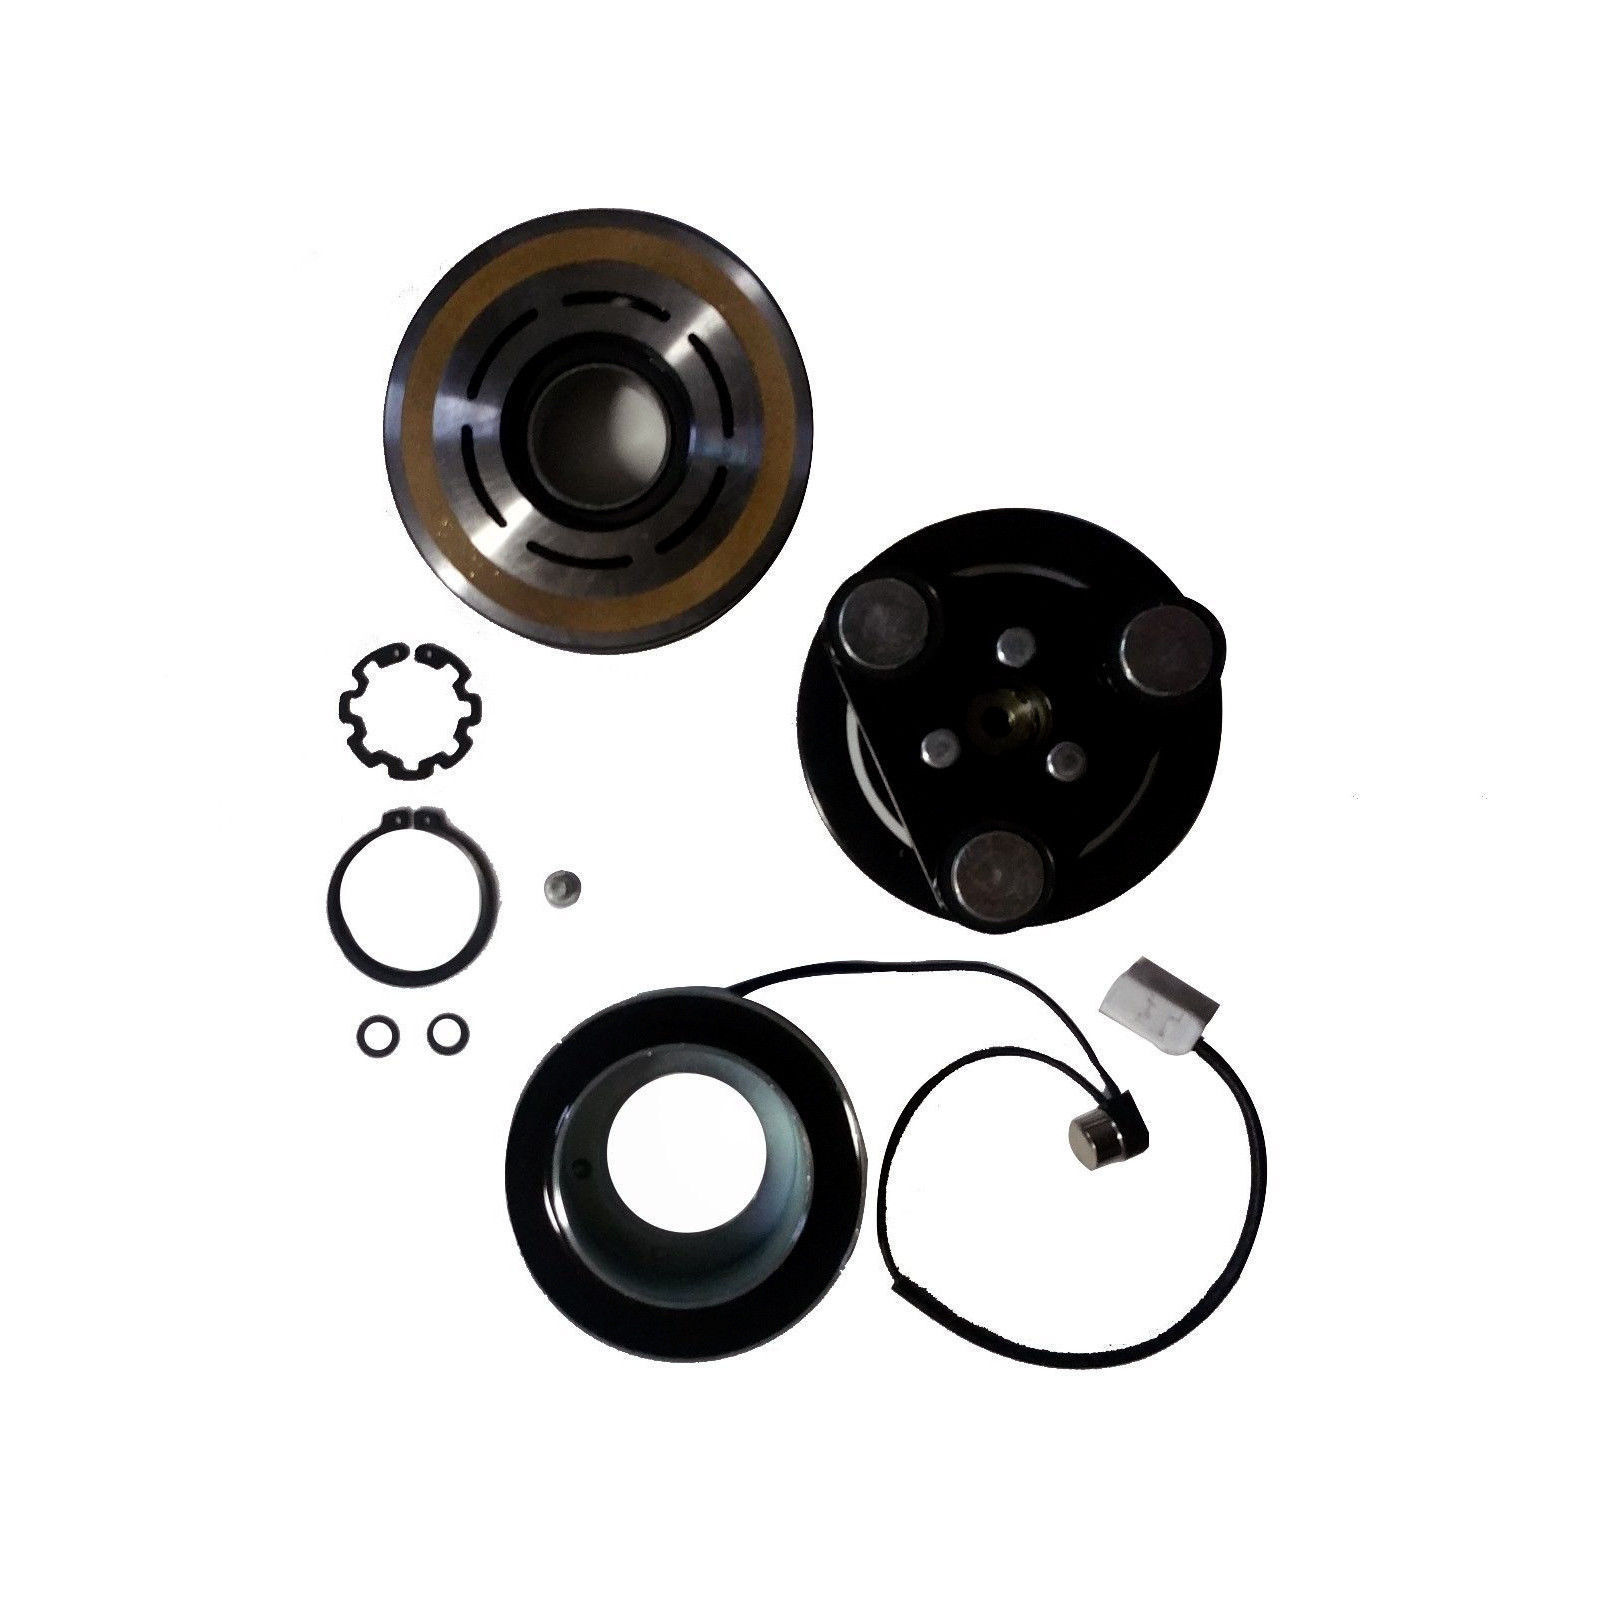 Plate Bearing Coil Pulley For MAZDA 3 5 US New A//C AC Compressor Clutch Kits